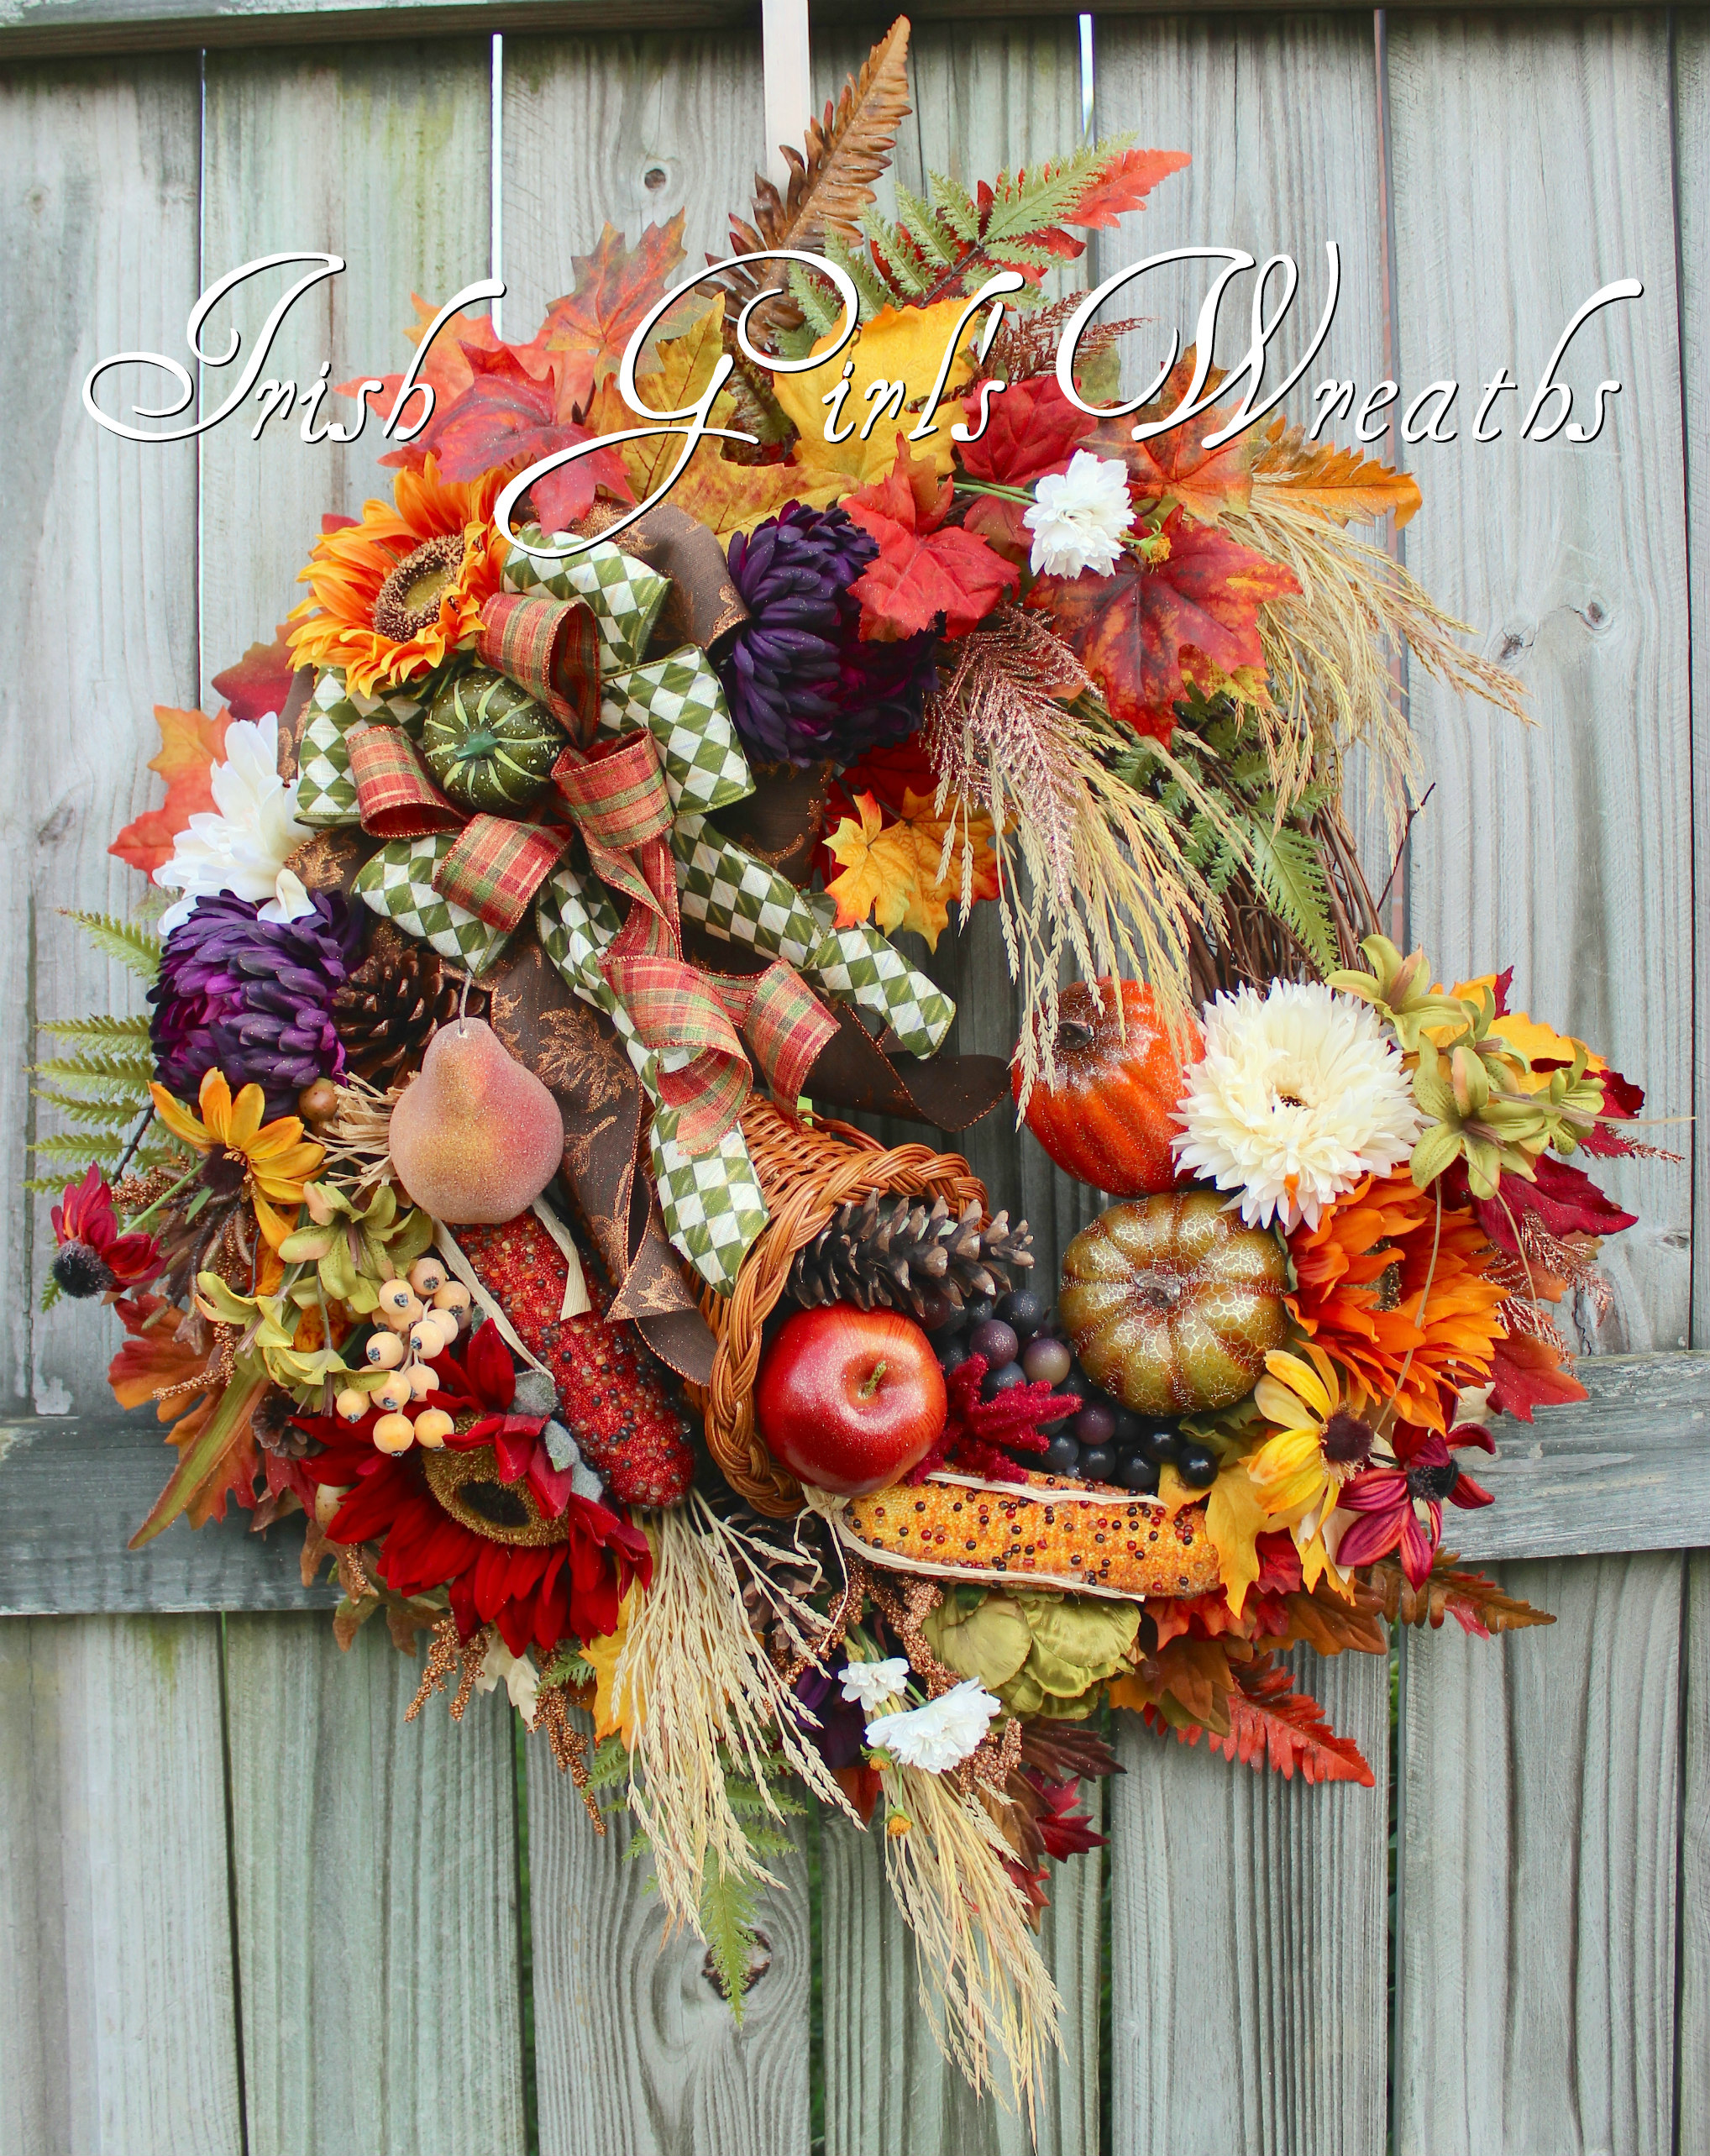 Elegant Fall Cornucopia Wreath, Large Autumn Bounty Thanksgiving Harvest Wreath